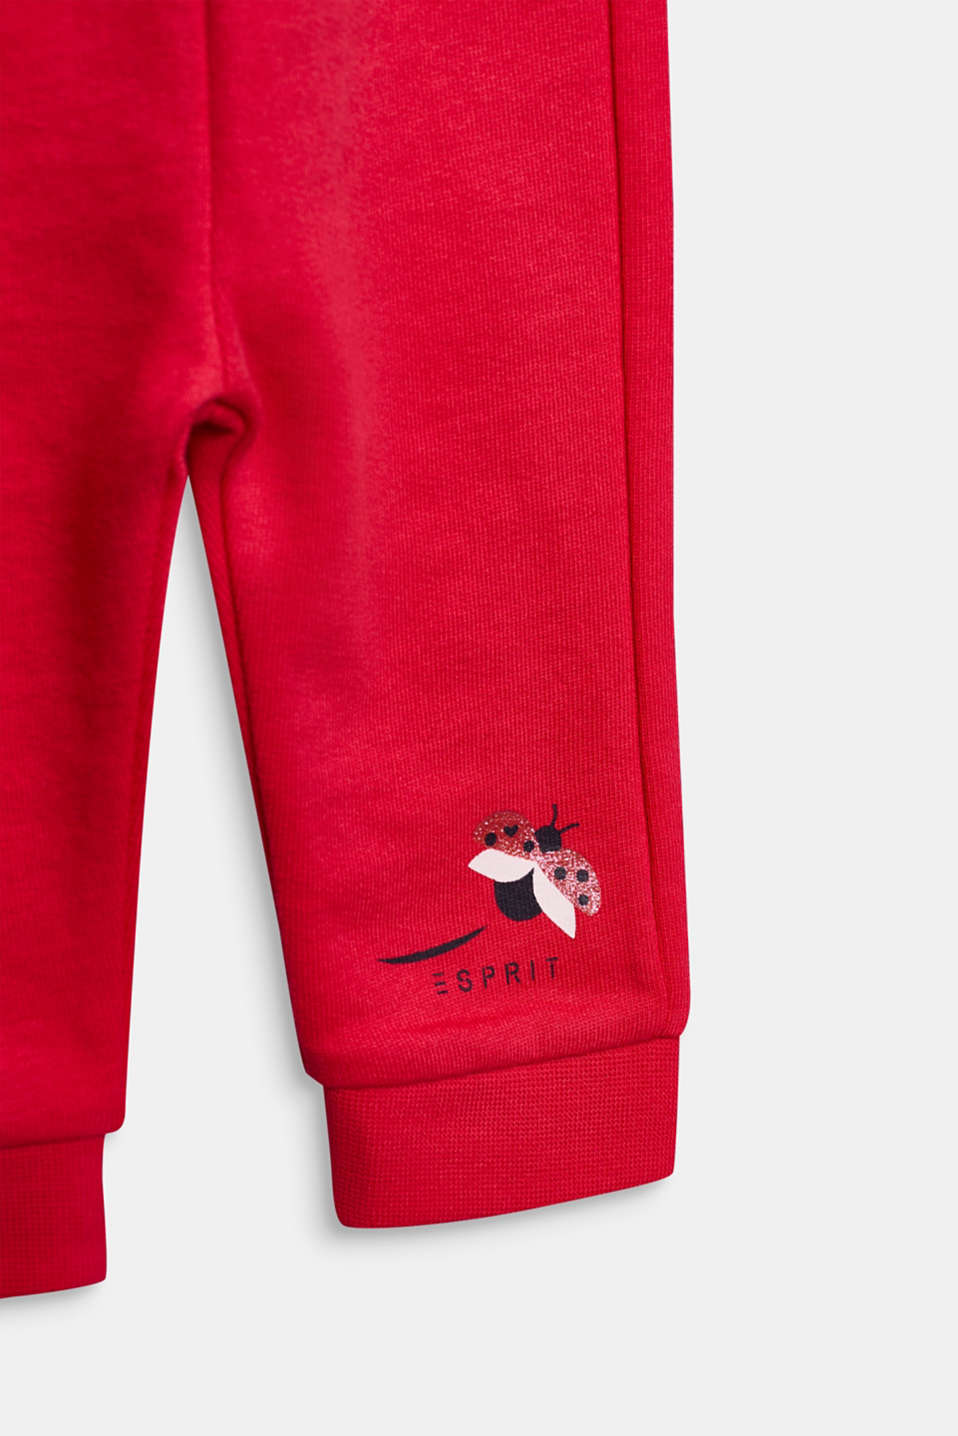 Tracksuit bottoms with a print, 100% cotton, LCRASPBERRY, detail image number 2